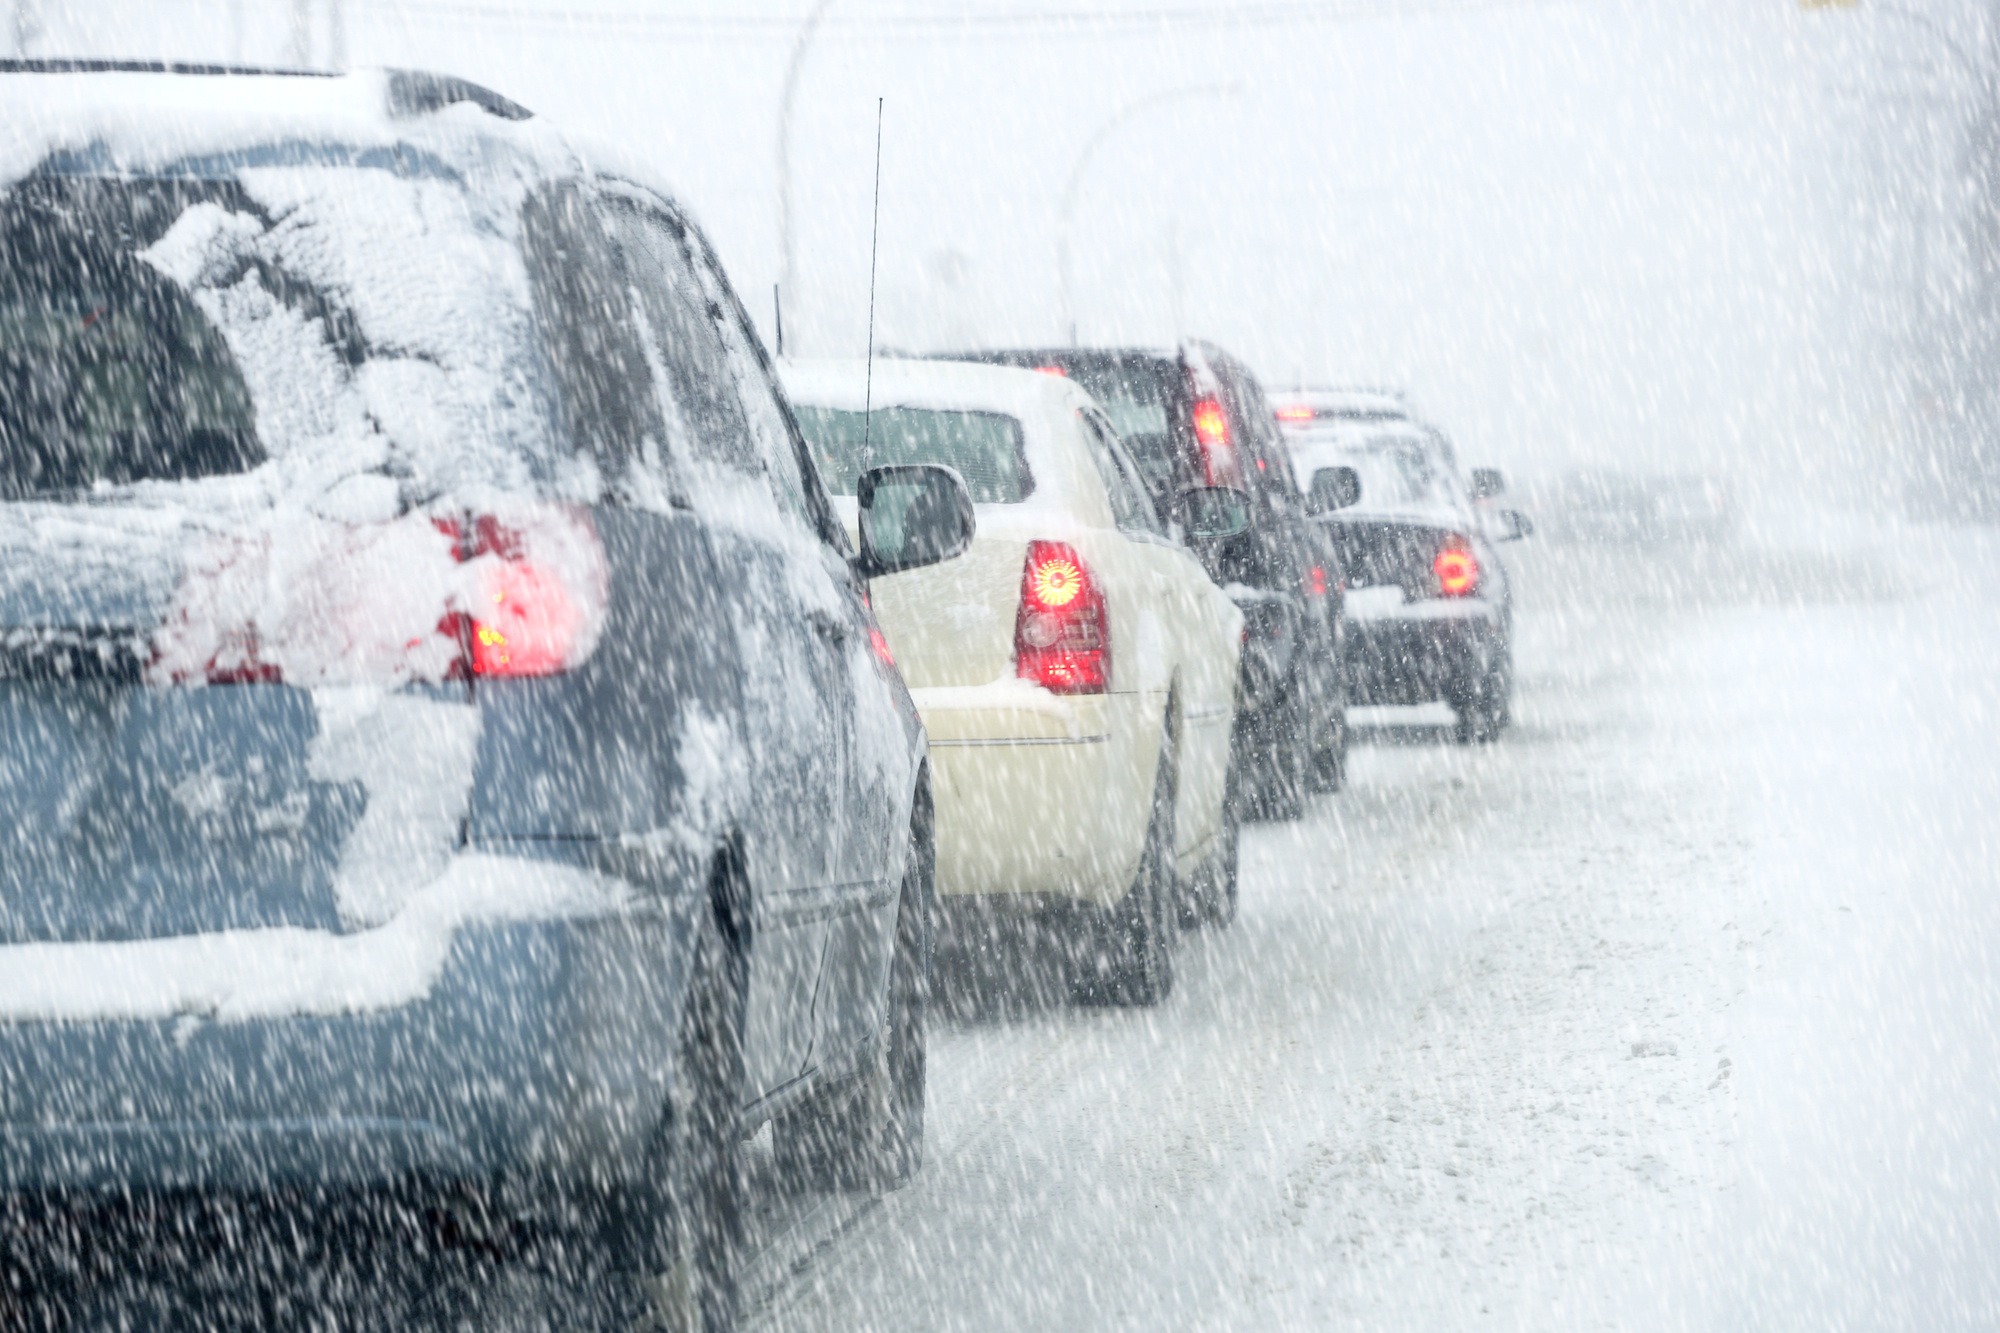 Winter travel advisory issued for Newmarket, Georgina - NewmarketToday.ca